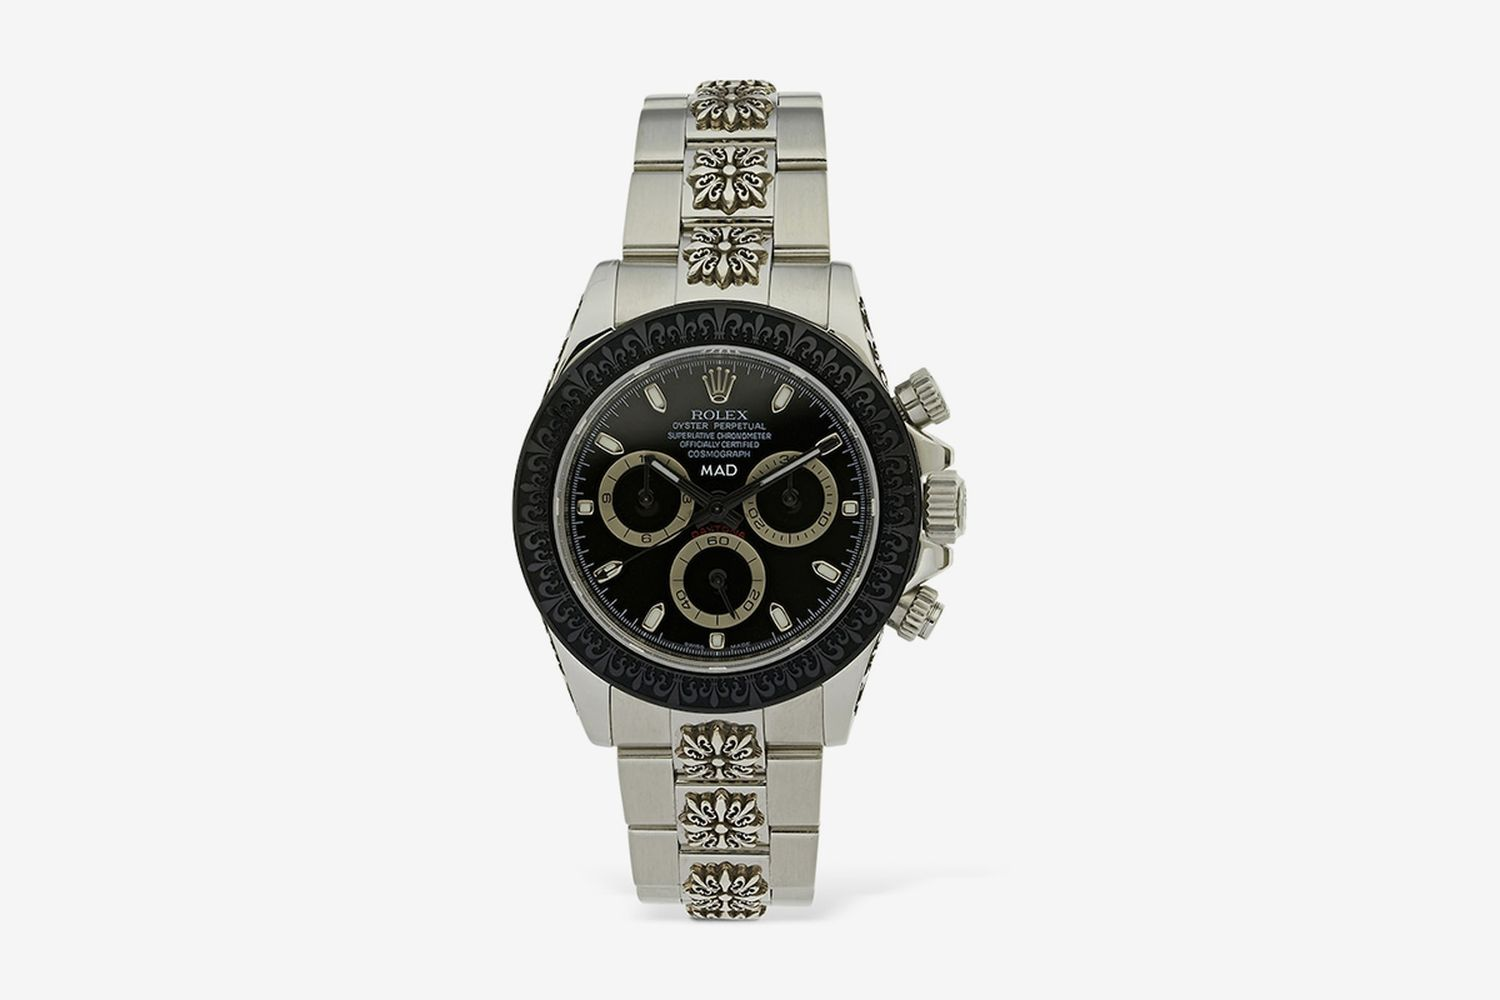 40mm Rolex Daytona Watch